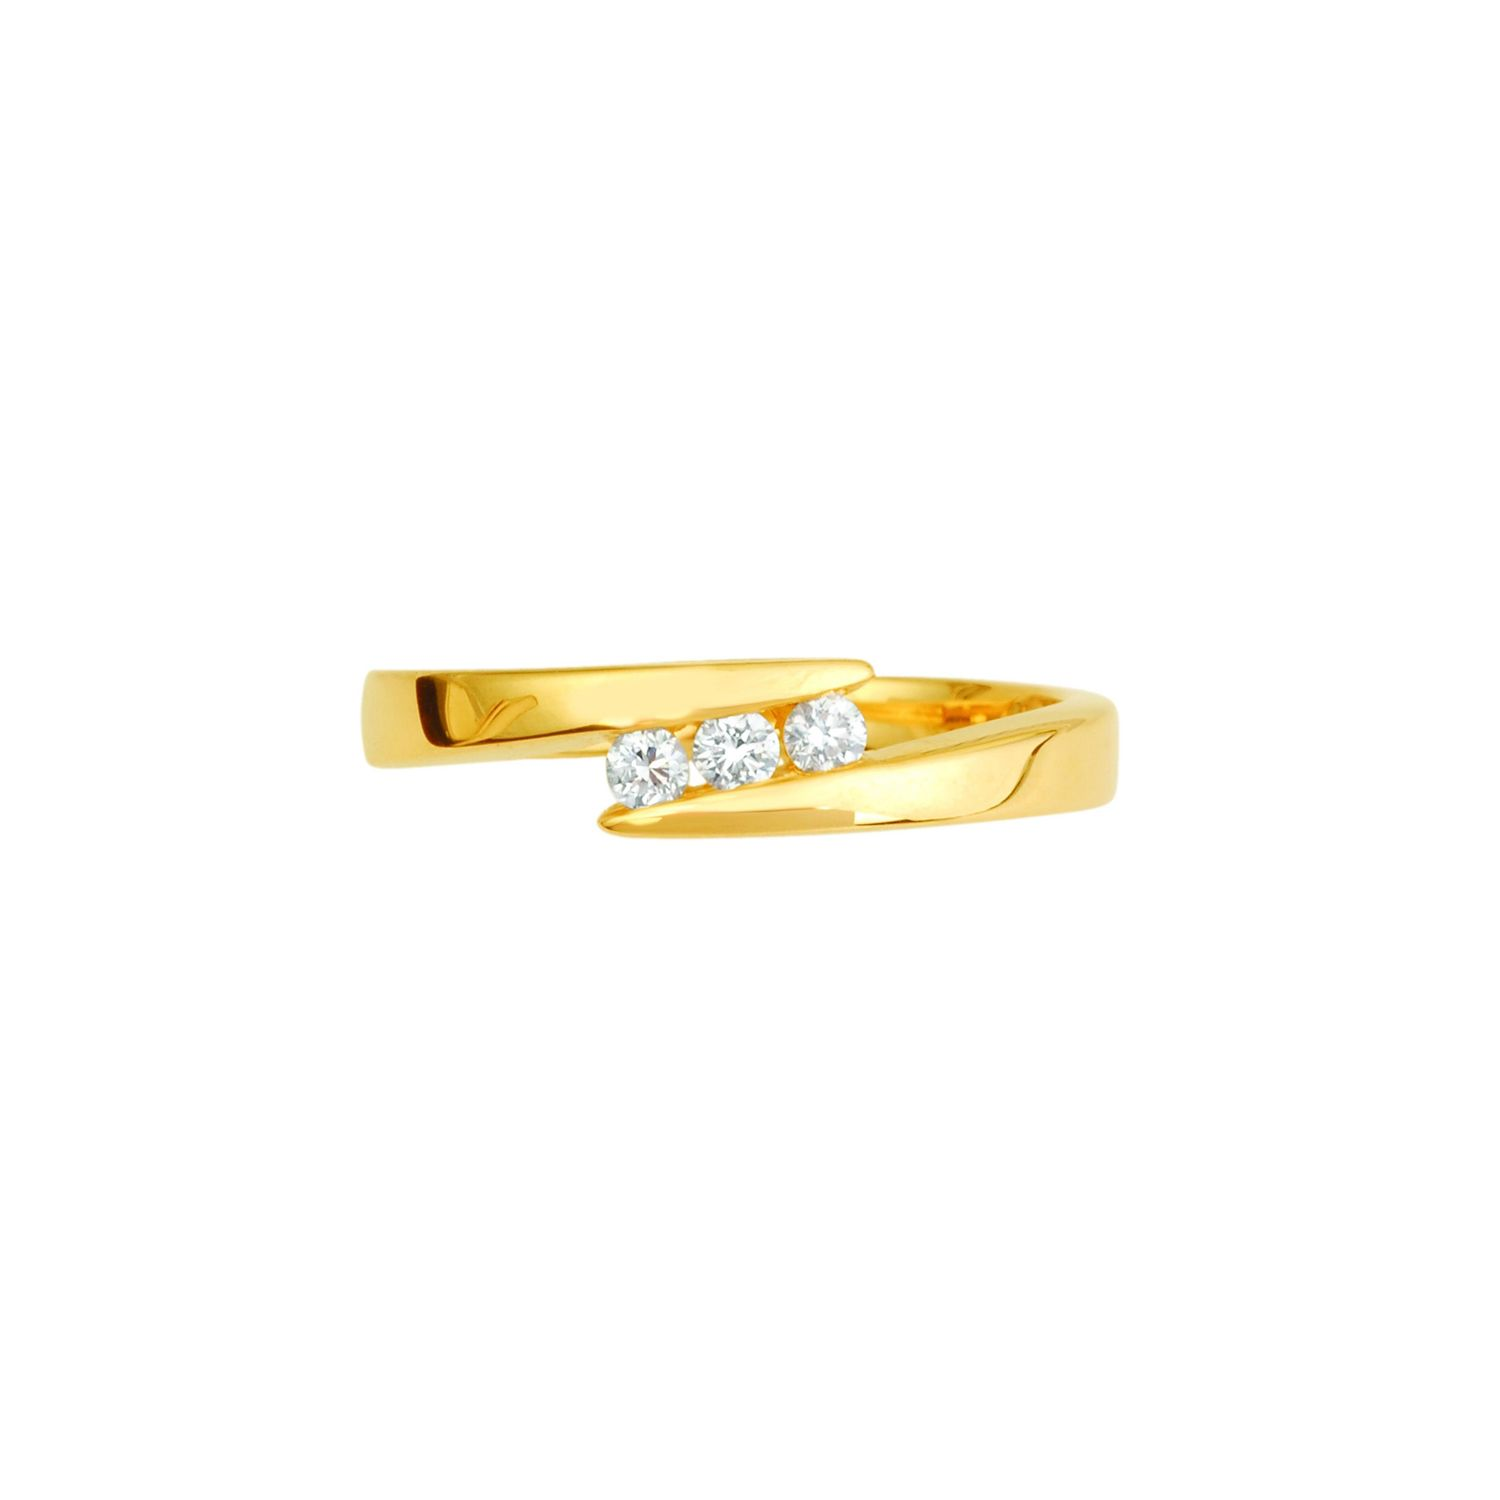 Bague en or jaune et diamants de 0.12ct